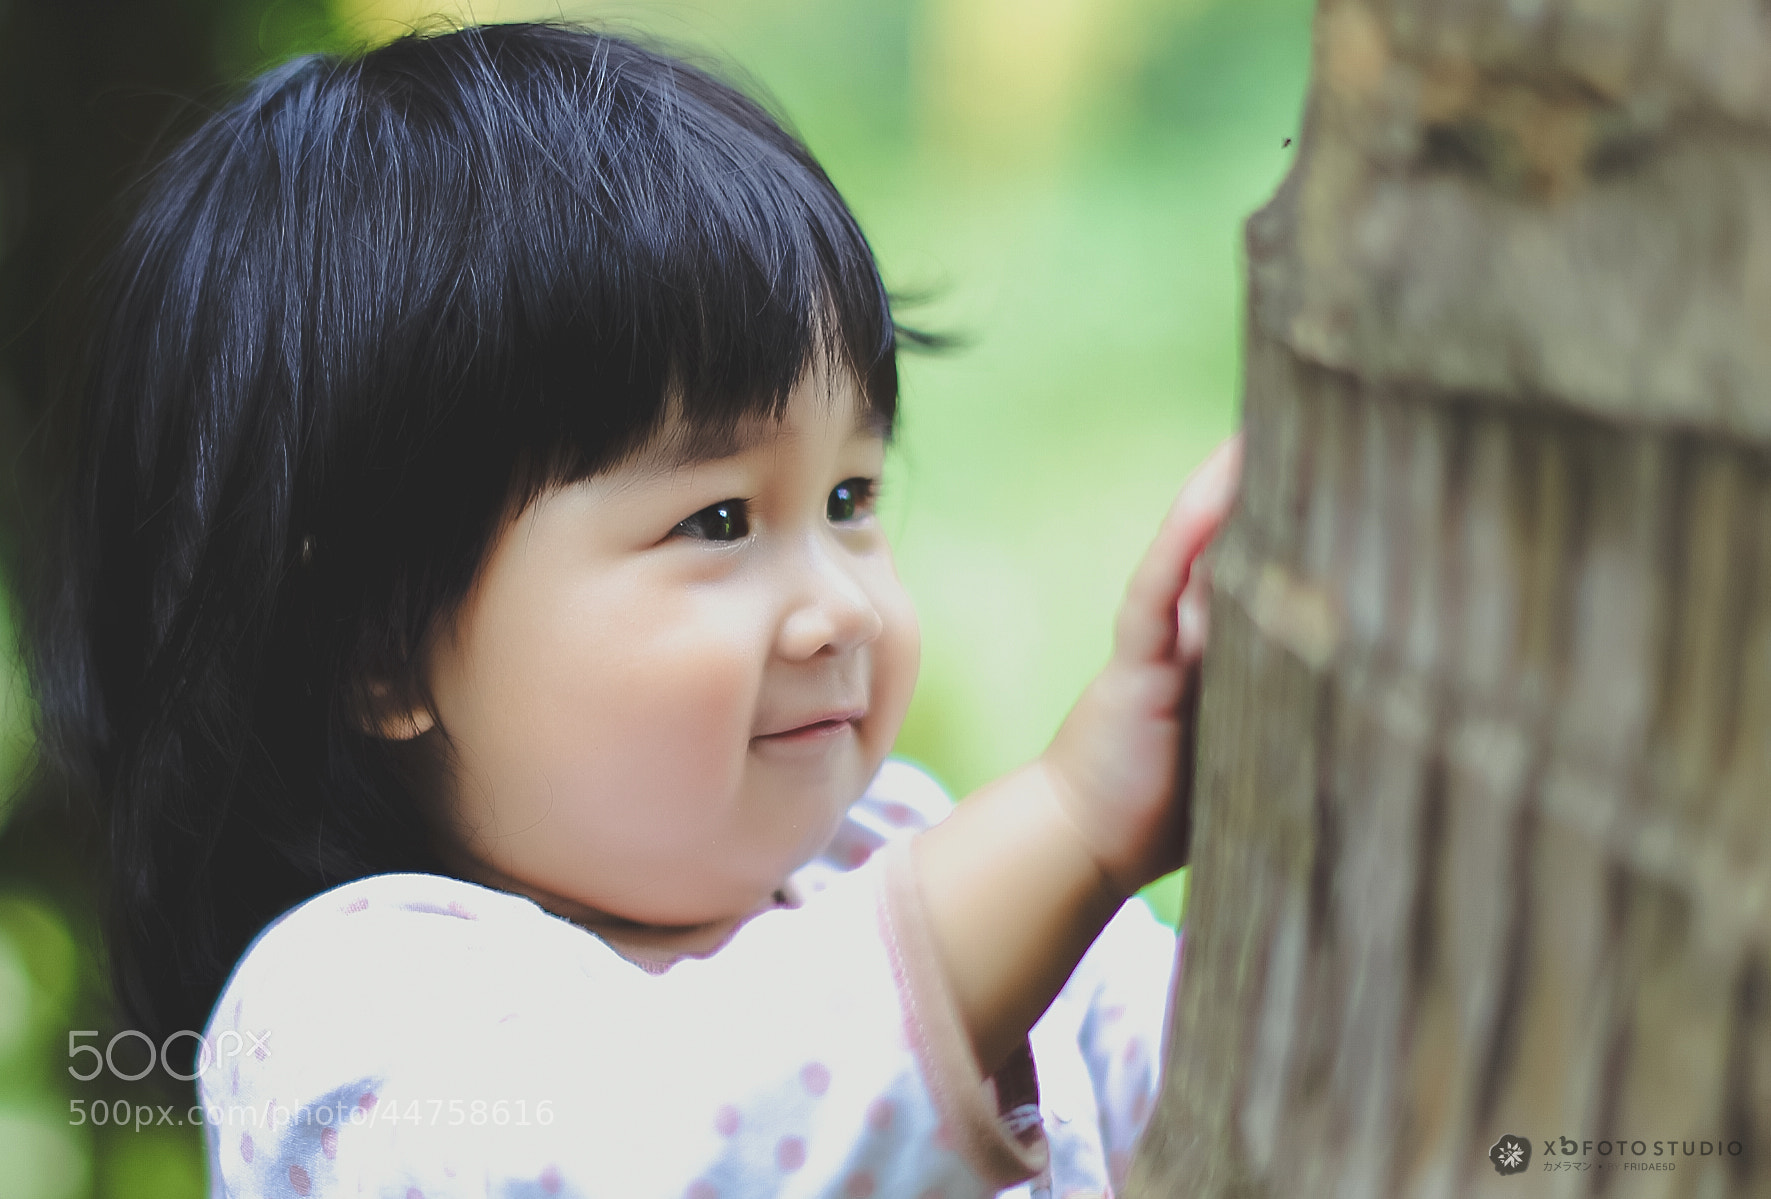 Photograph BABY by artist x๖fotostudio on 500px